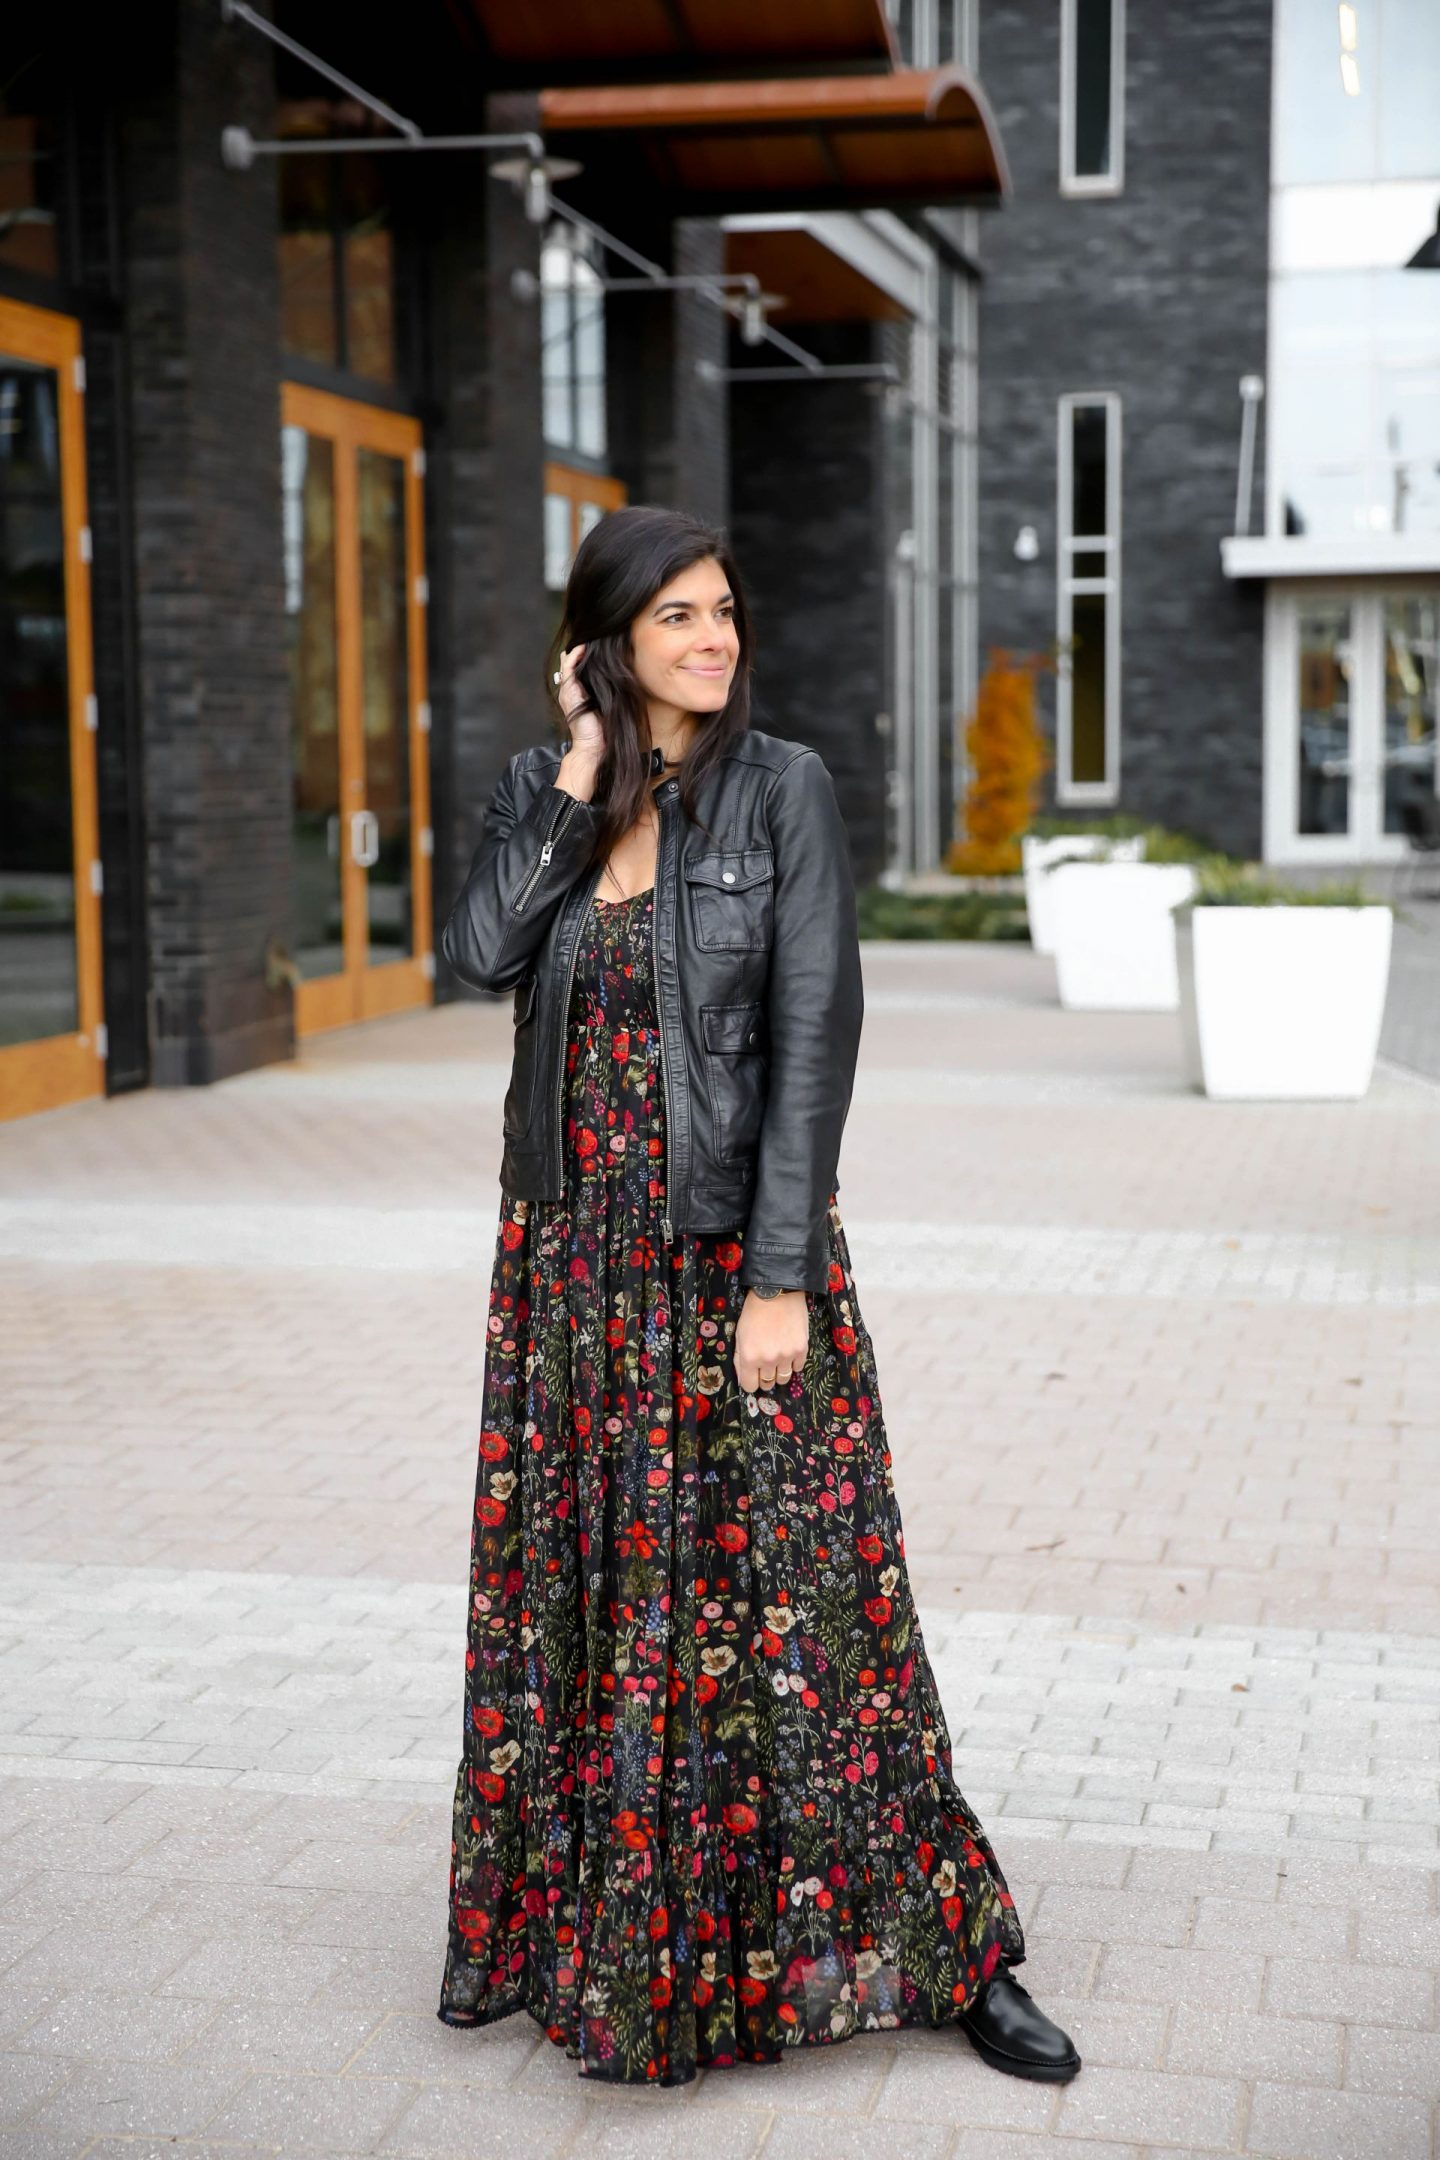 Floral Dress - Leather Jacket - Casual Chic Style Inspiration - Lauren Schwaiger